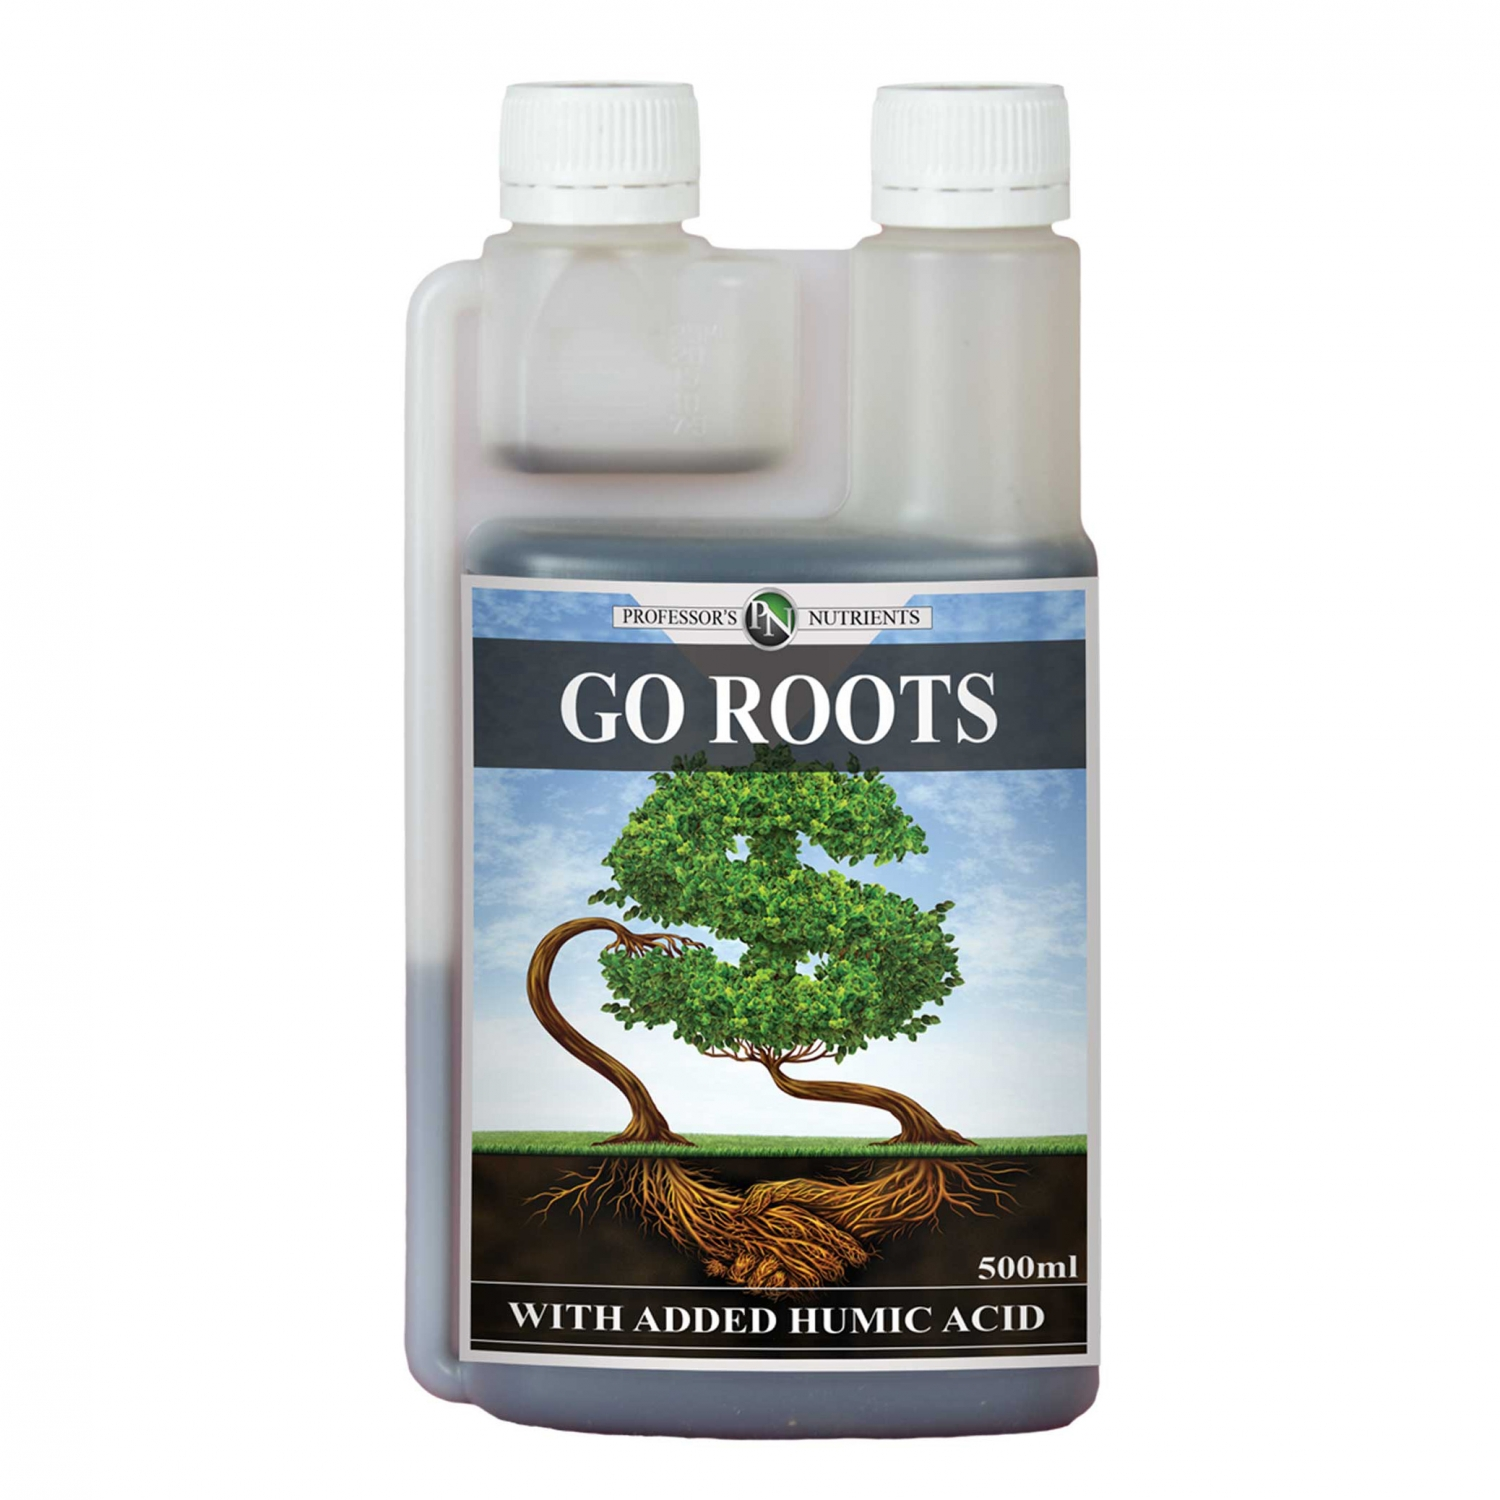 Go Roots by Professor's Nutrients